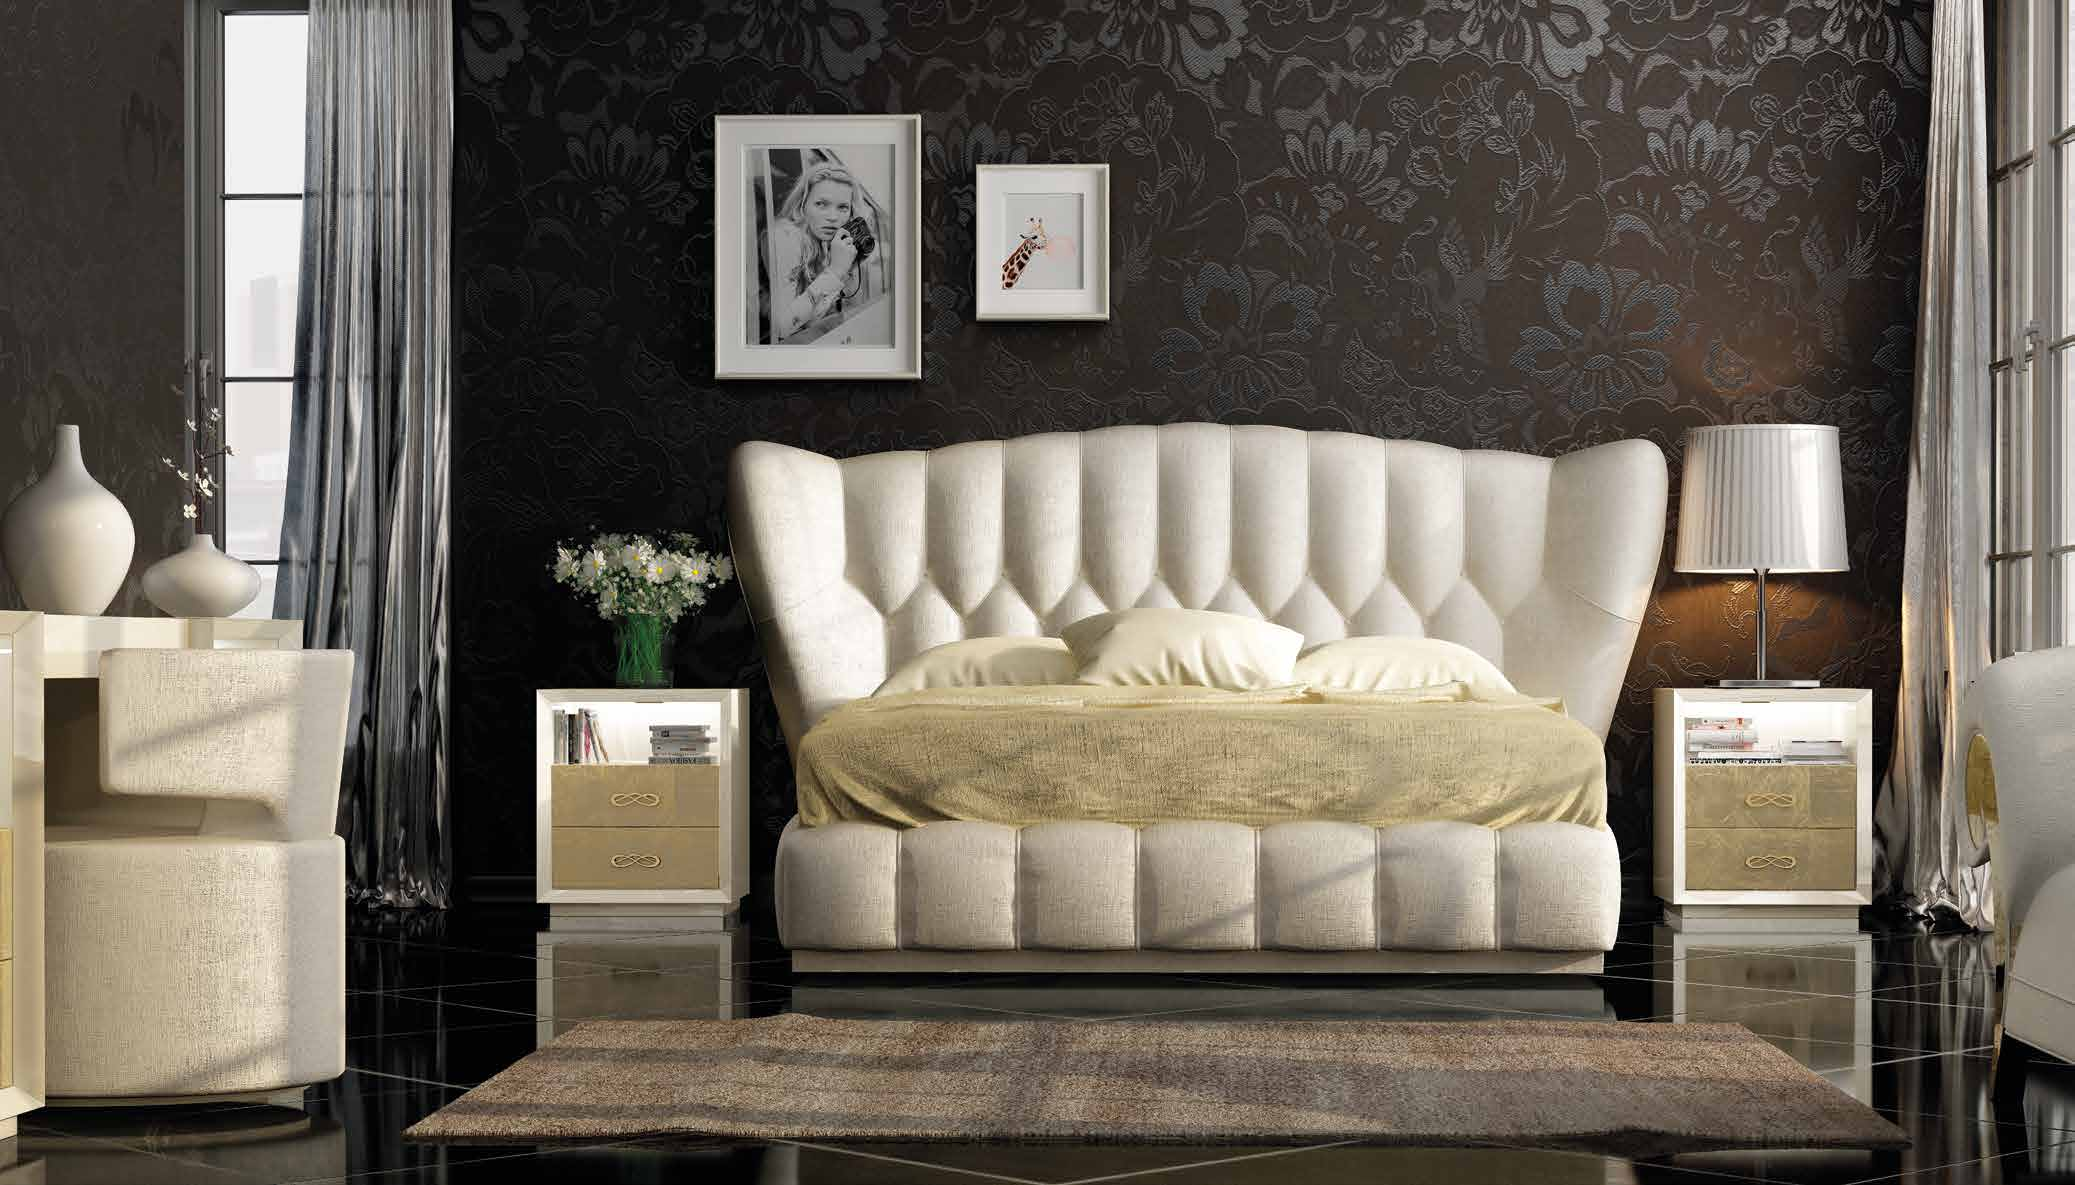 CATALOGO-KIU-FRANCO-FURNITURE-336